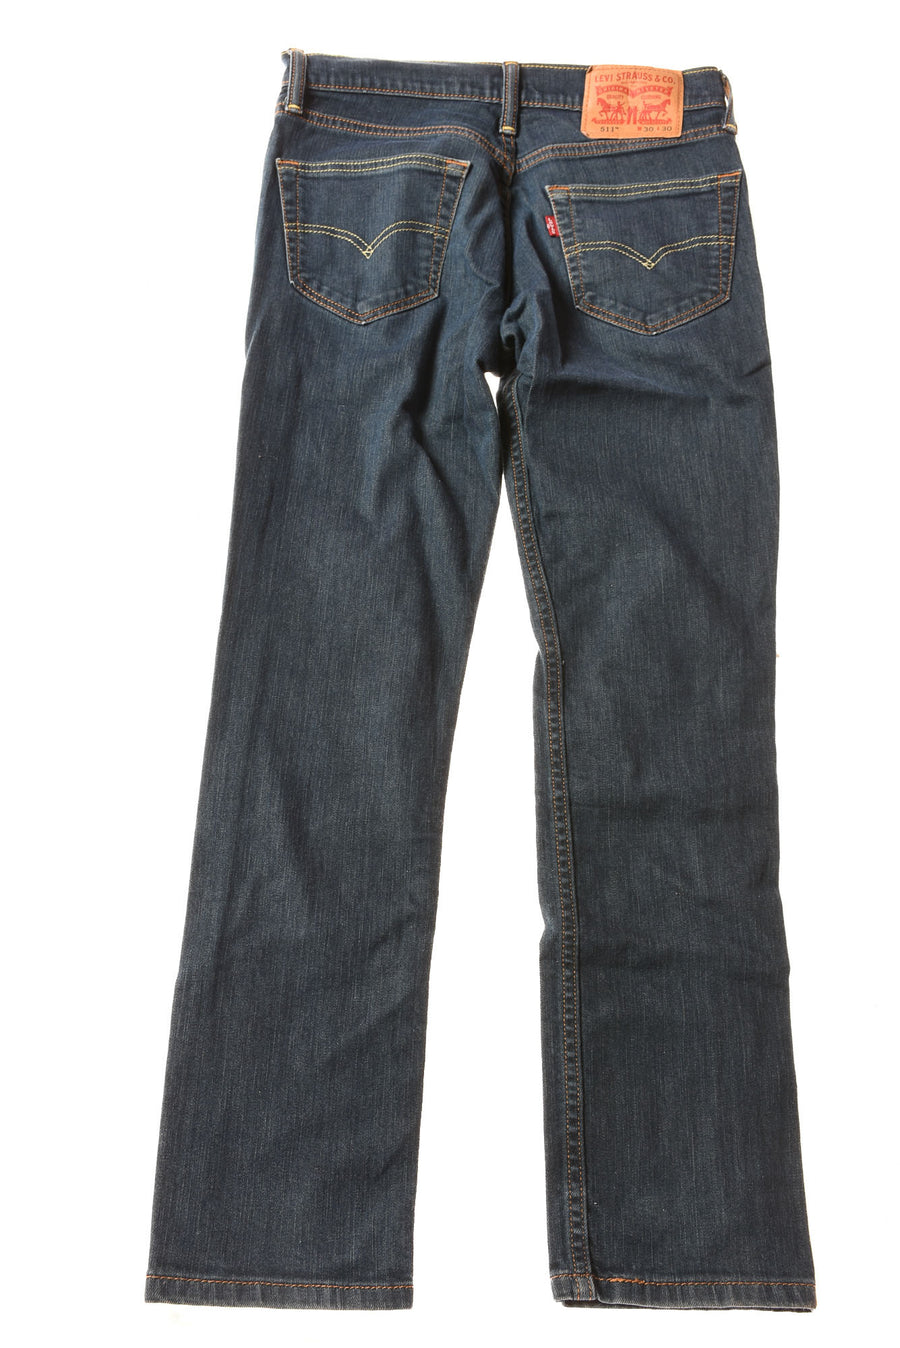 USED Levi's Men's Jeans 30x30 Blue